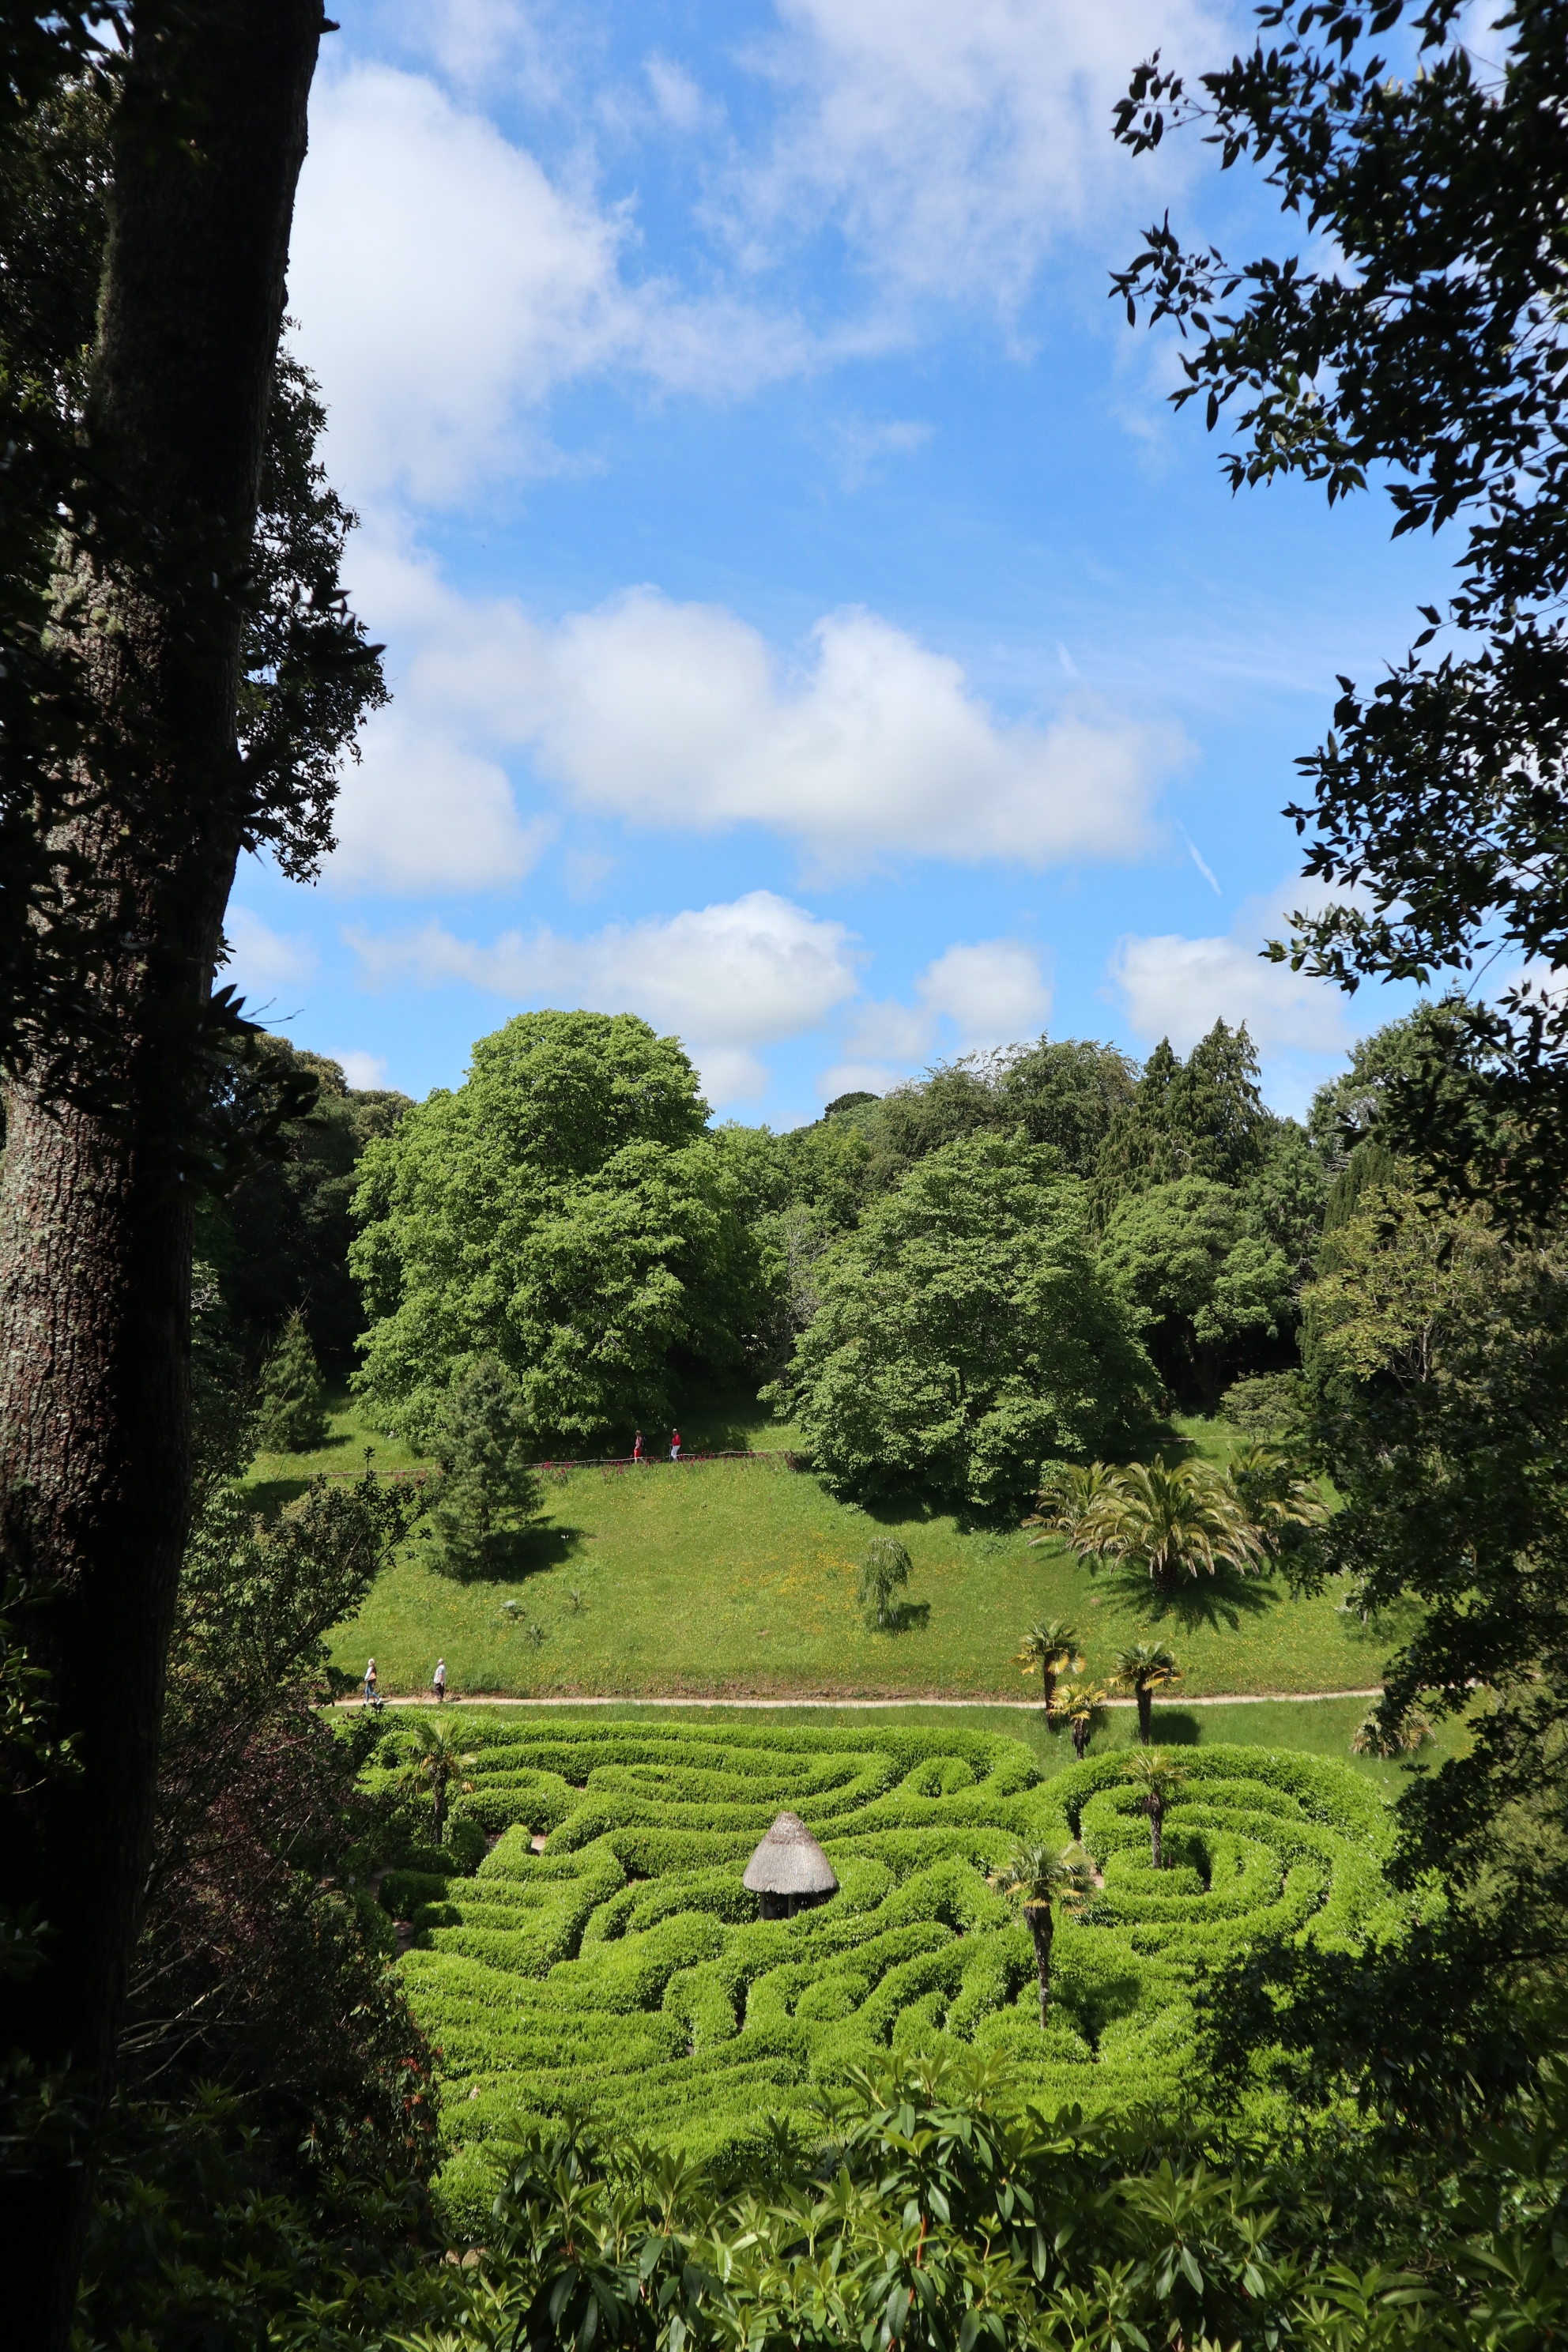 The maze at Glendurgan Garden in Cornwall